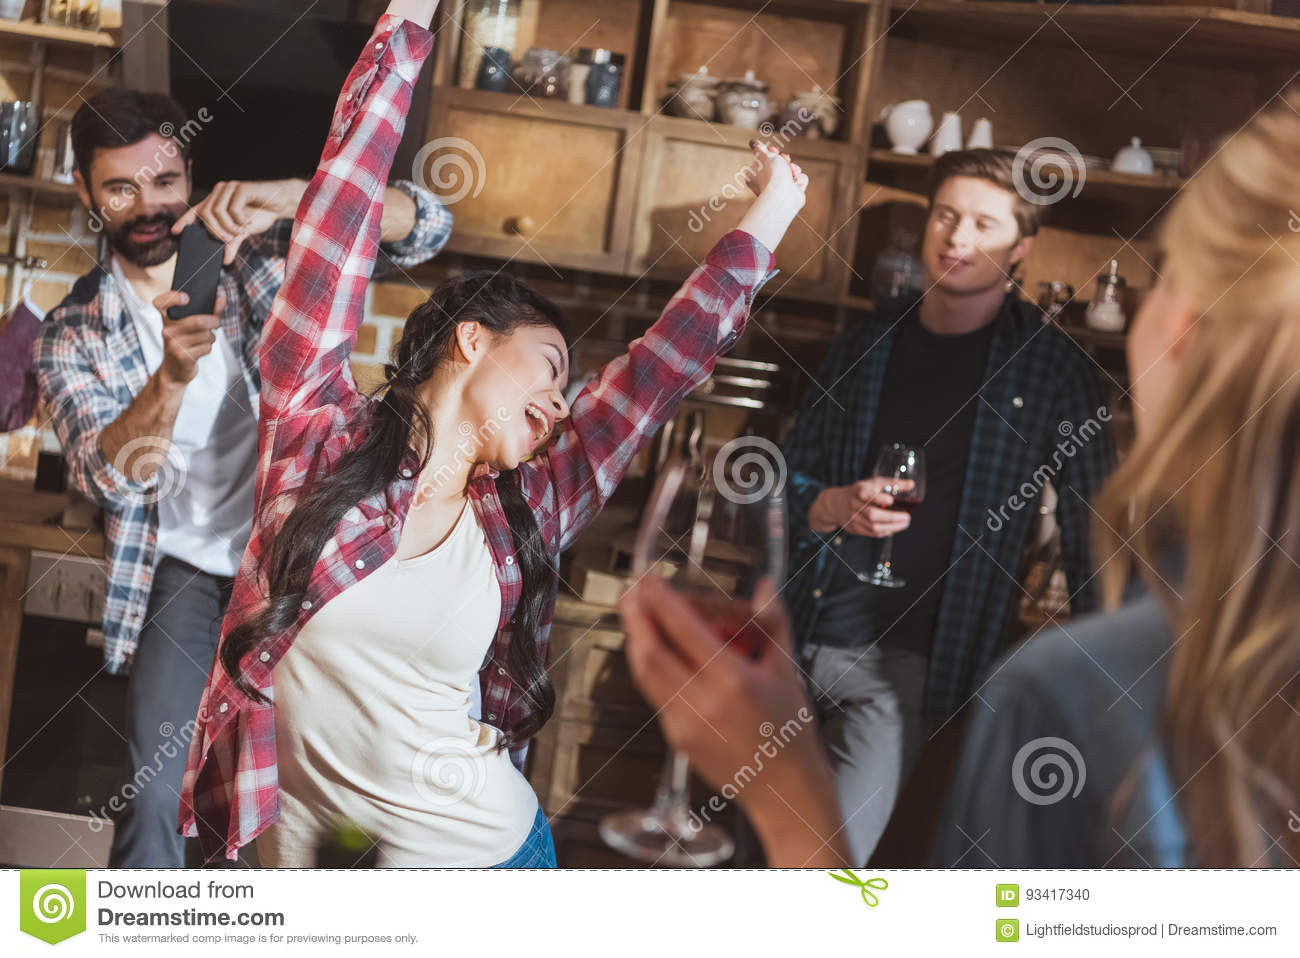 People having fun at home party